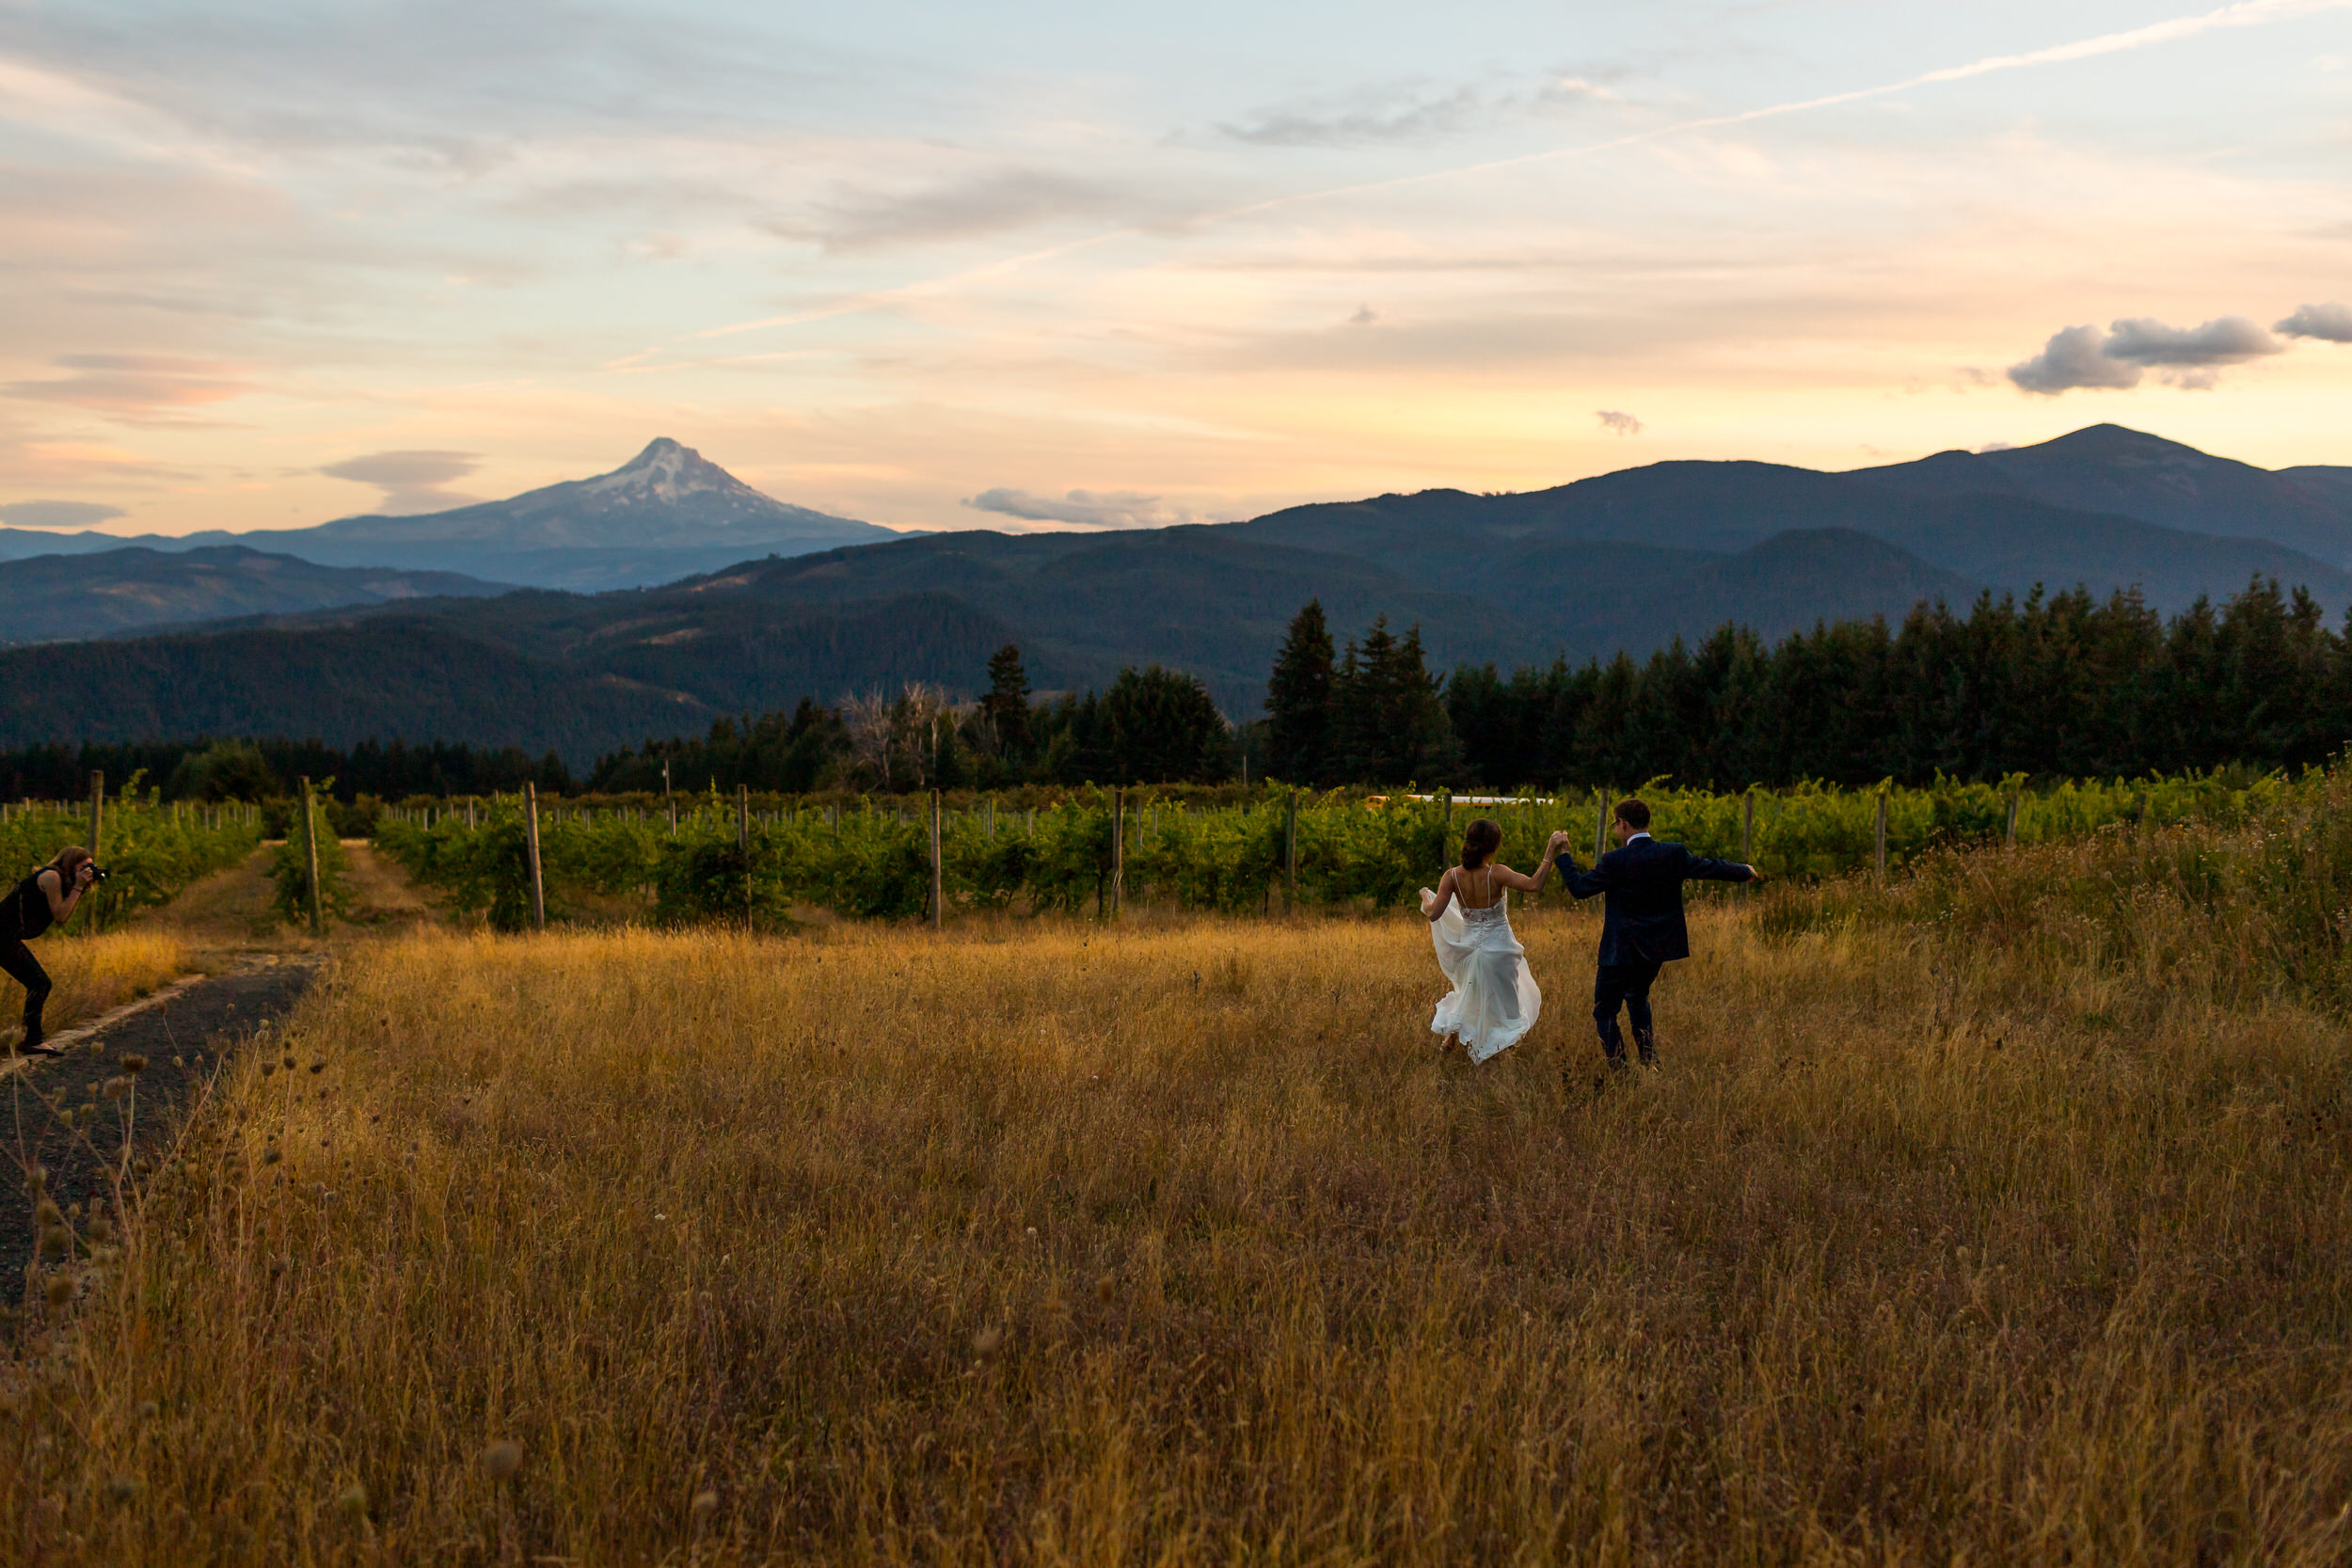 Gorge_Crest_Vineyards_Wedding_Stark_Photography_051